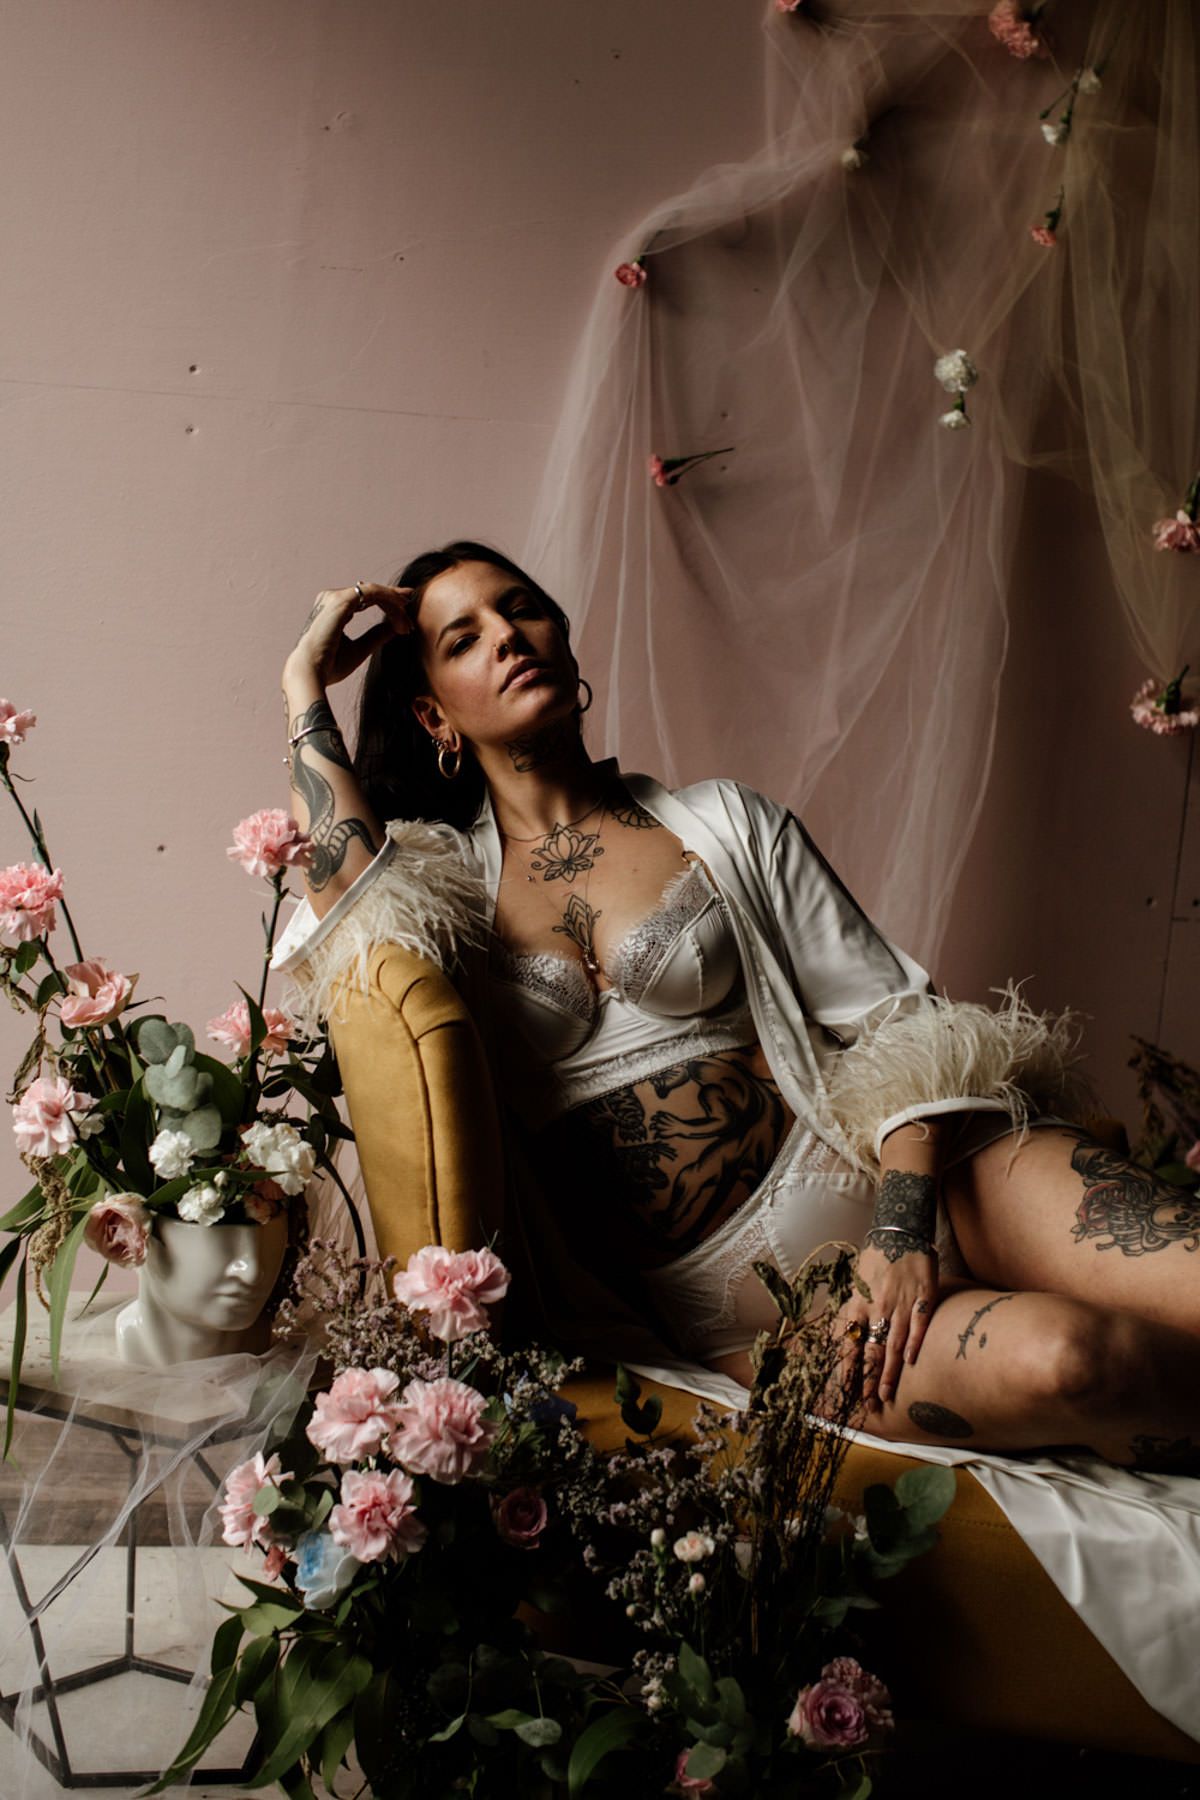 Luxe Bridal Lingerie Inspiration at the Giraffe Shed